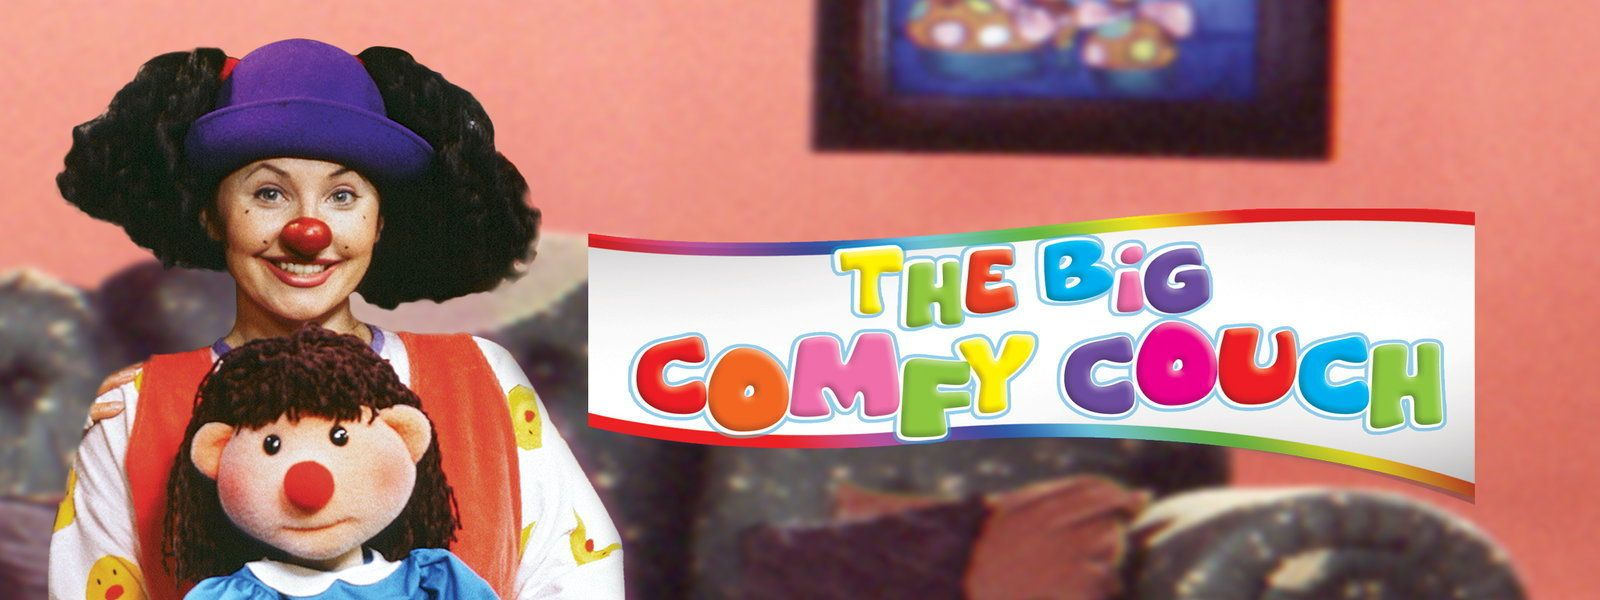 Here's What Loonette The Clown From 'The Big Comfy Couch' Looks